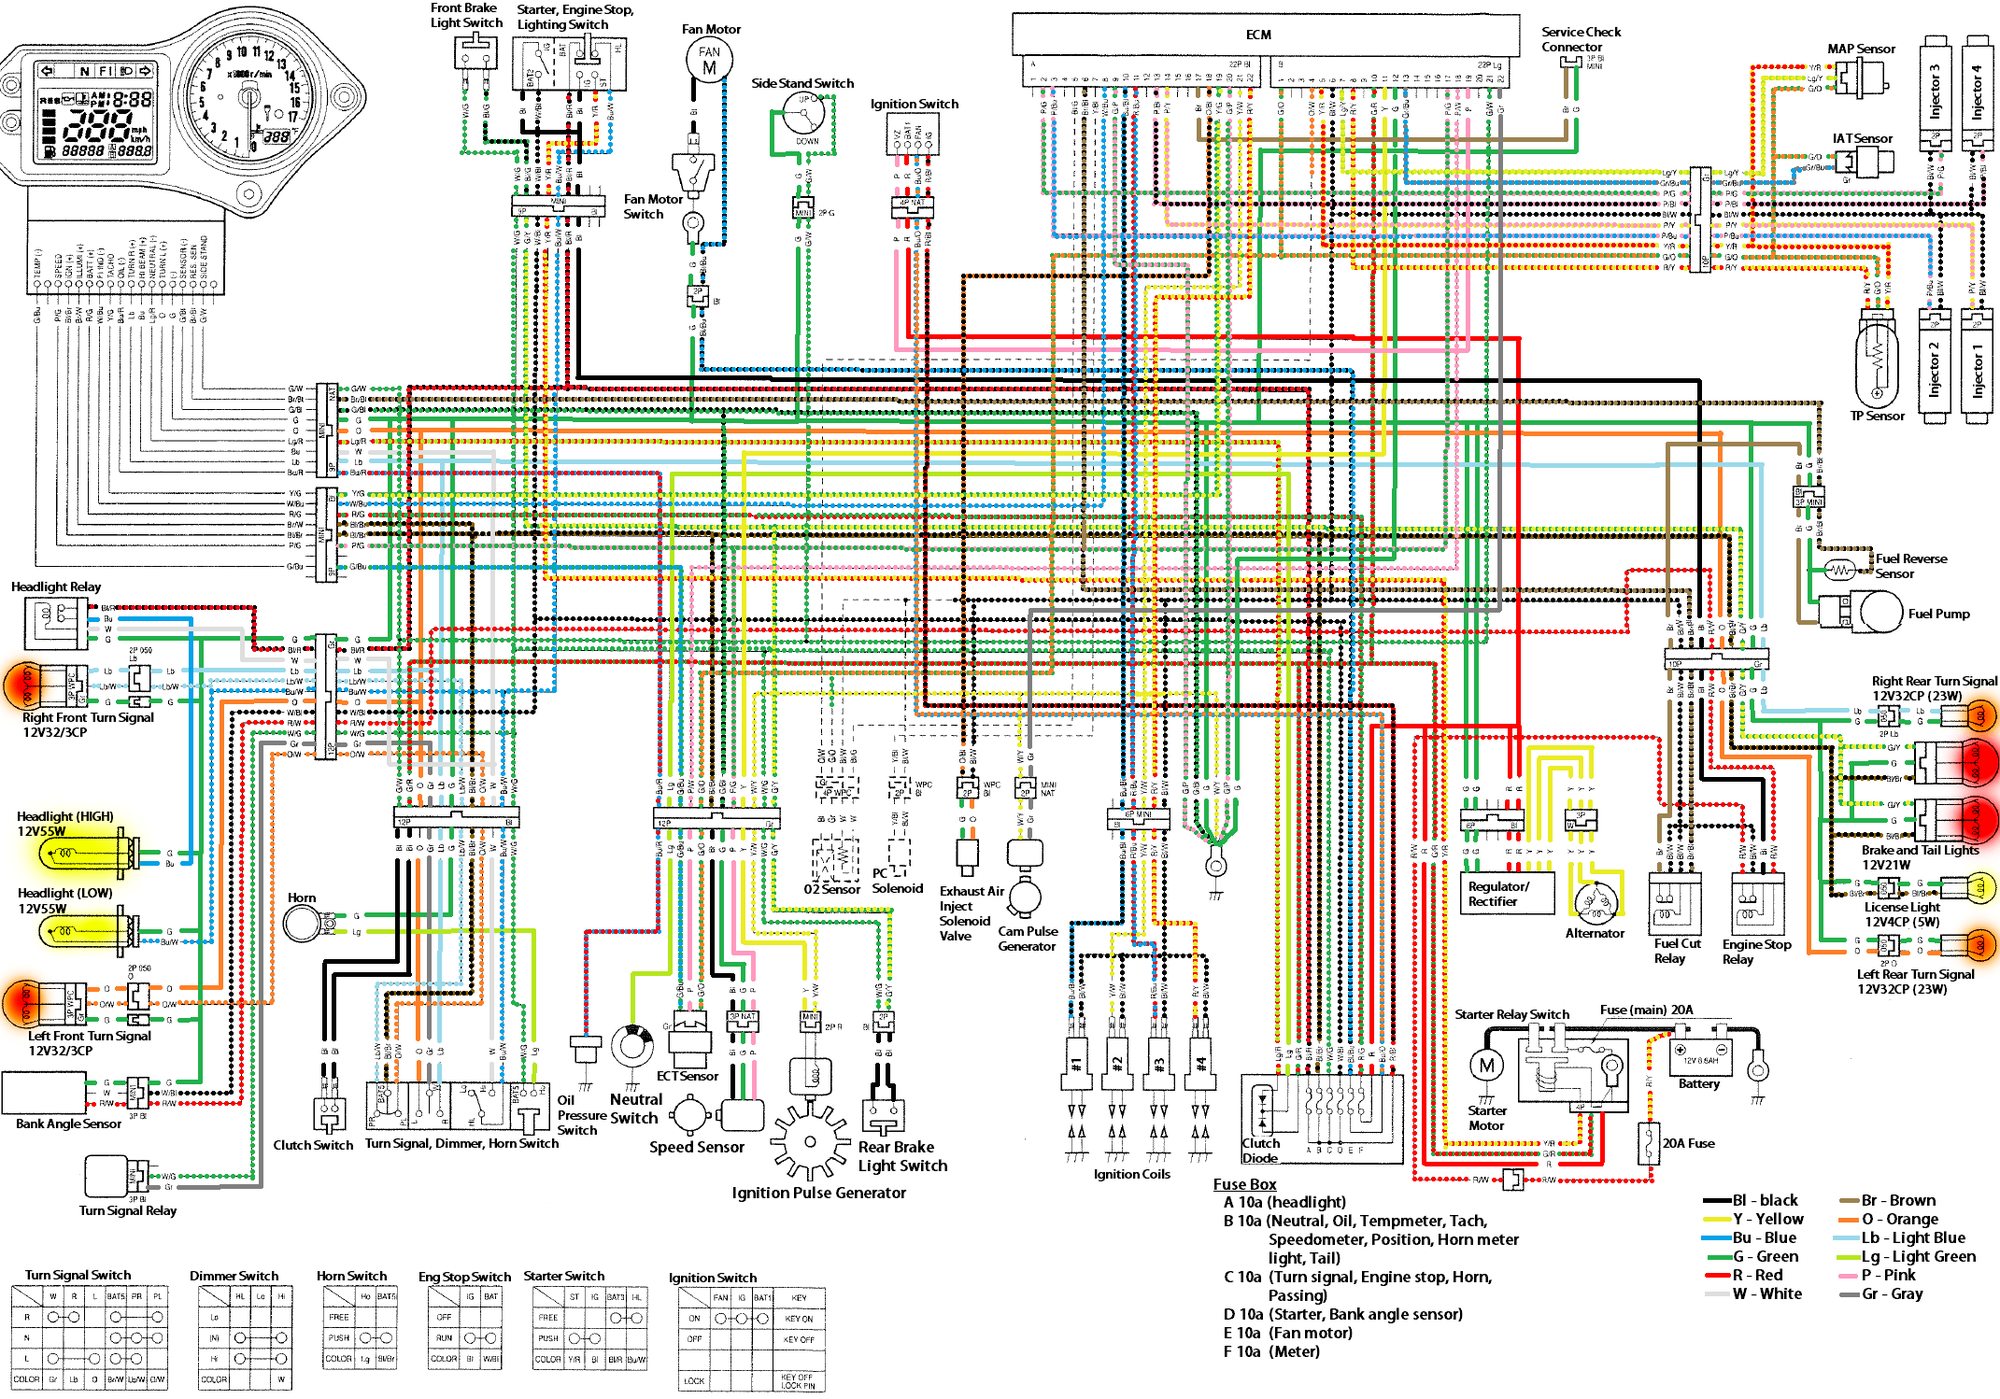 wiring diagram 2004 honda cbr1000rr - fusebox and wiring diagram series-die  - series-die.sirtarghe.it  diagram database - sirtarghe.it